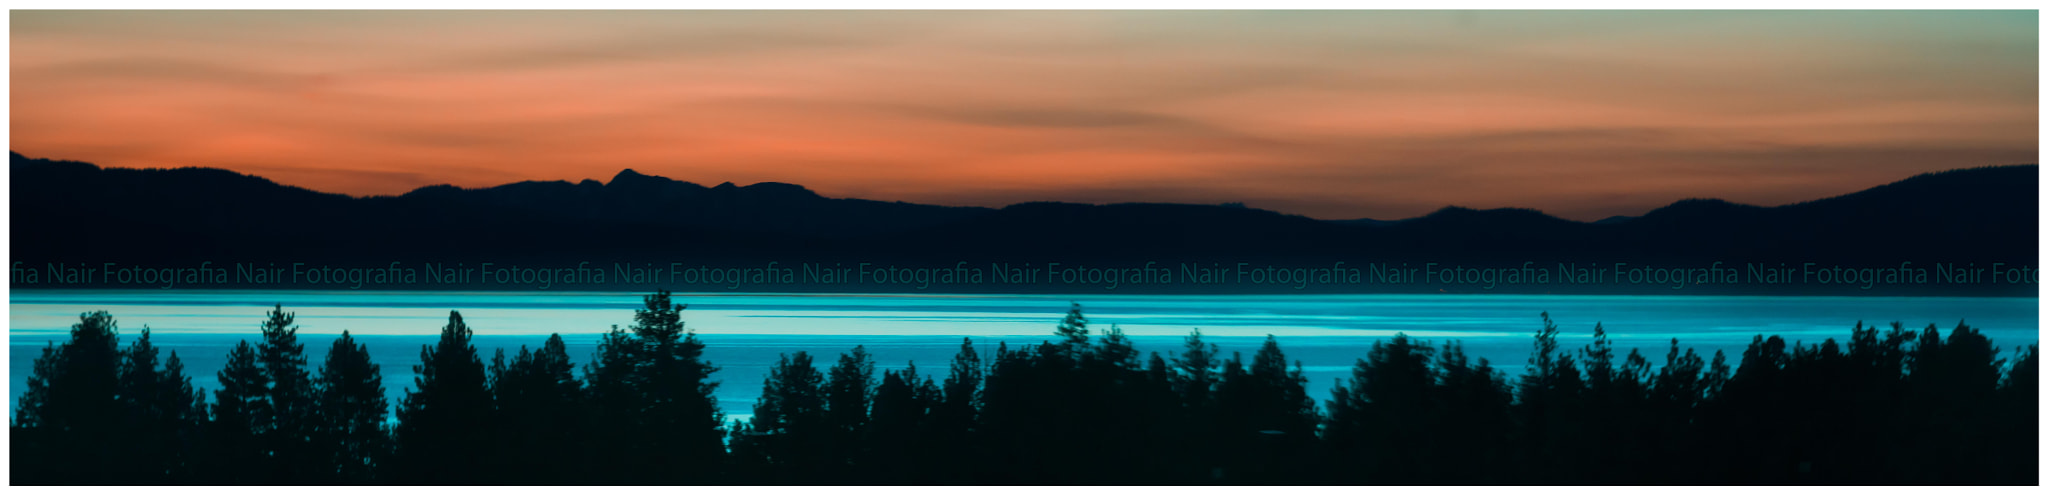 Photograph Panoramic Tahoe by Nair Fotografia on 500px